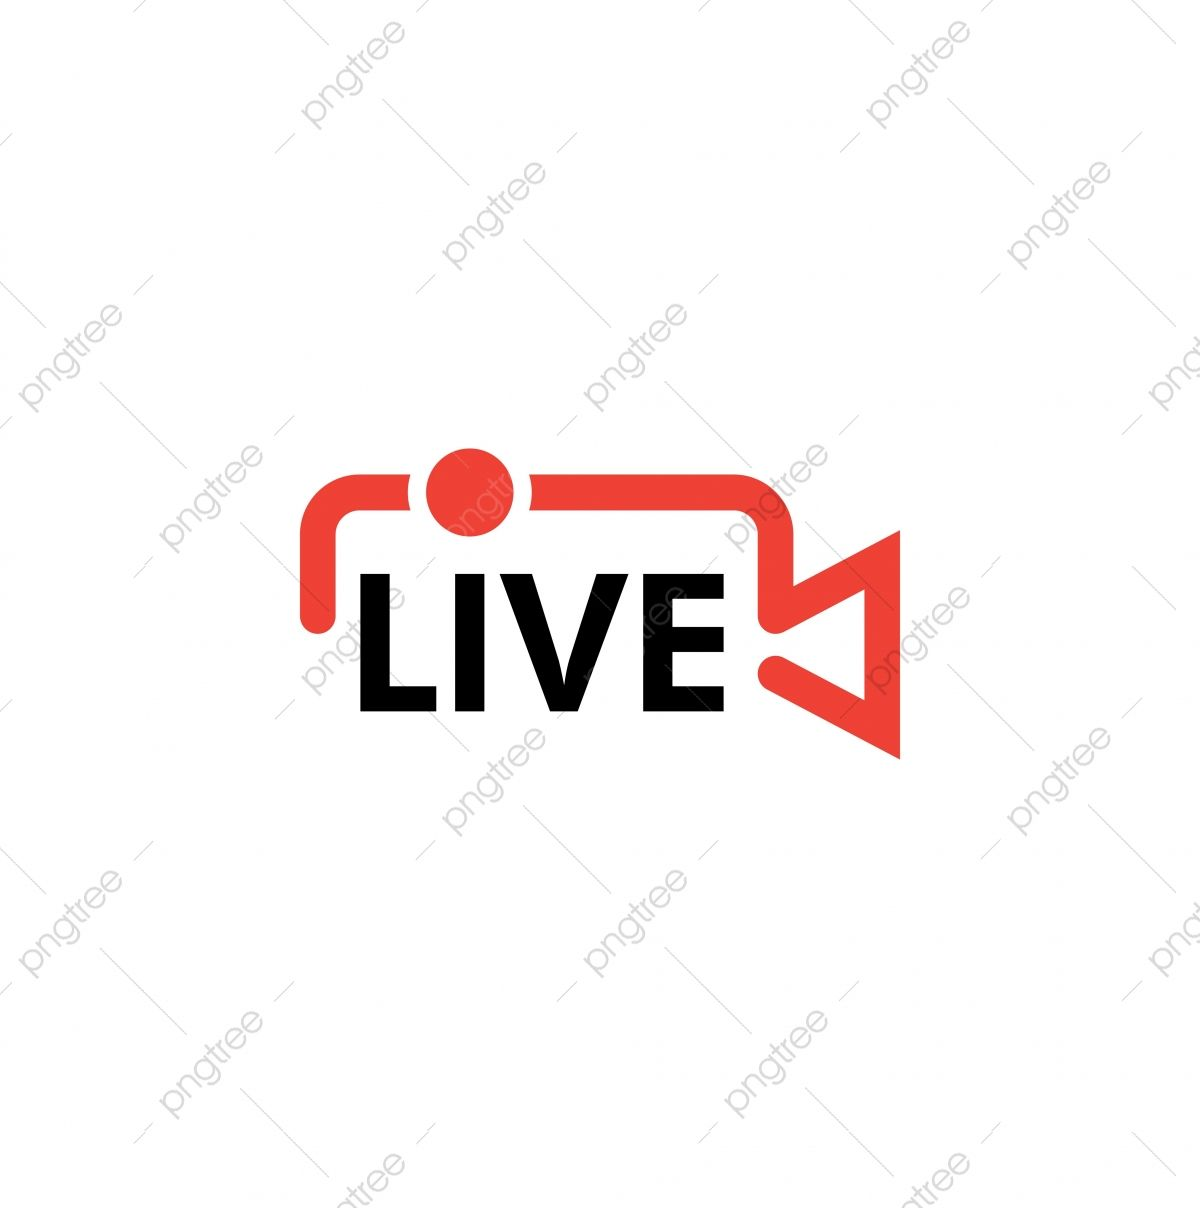 Live Icon Design Template Vector Isolated Illustration Live Icons Template Icons Streaming Png And Vector With Transparent Background For Free Download Diseno De Icono Icono De Facebook Iconos De Redes Sociales